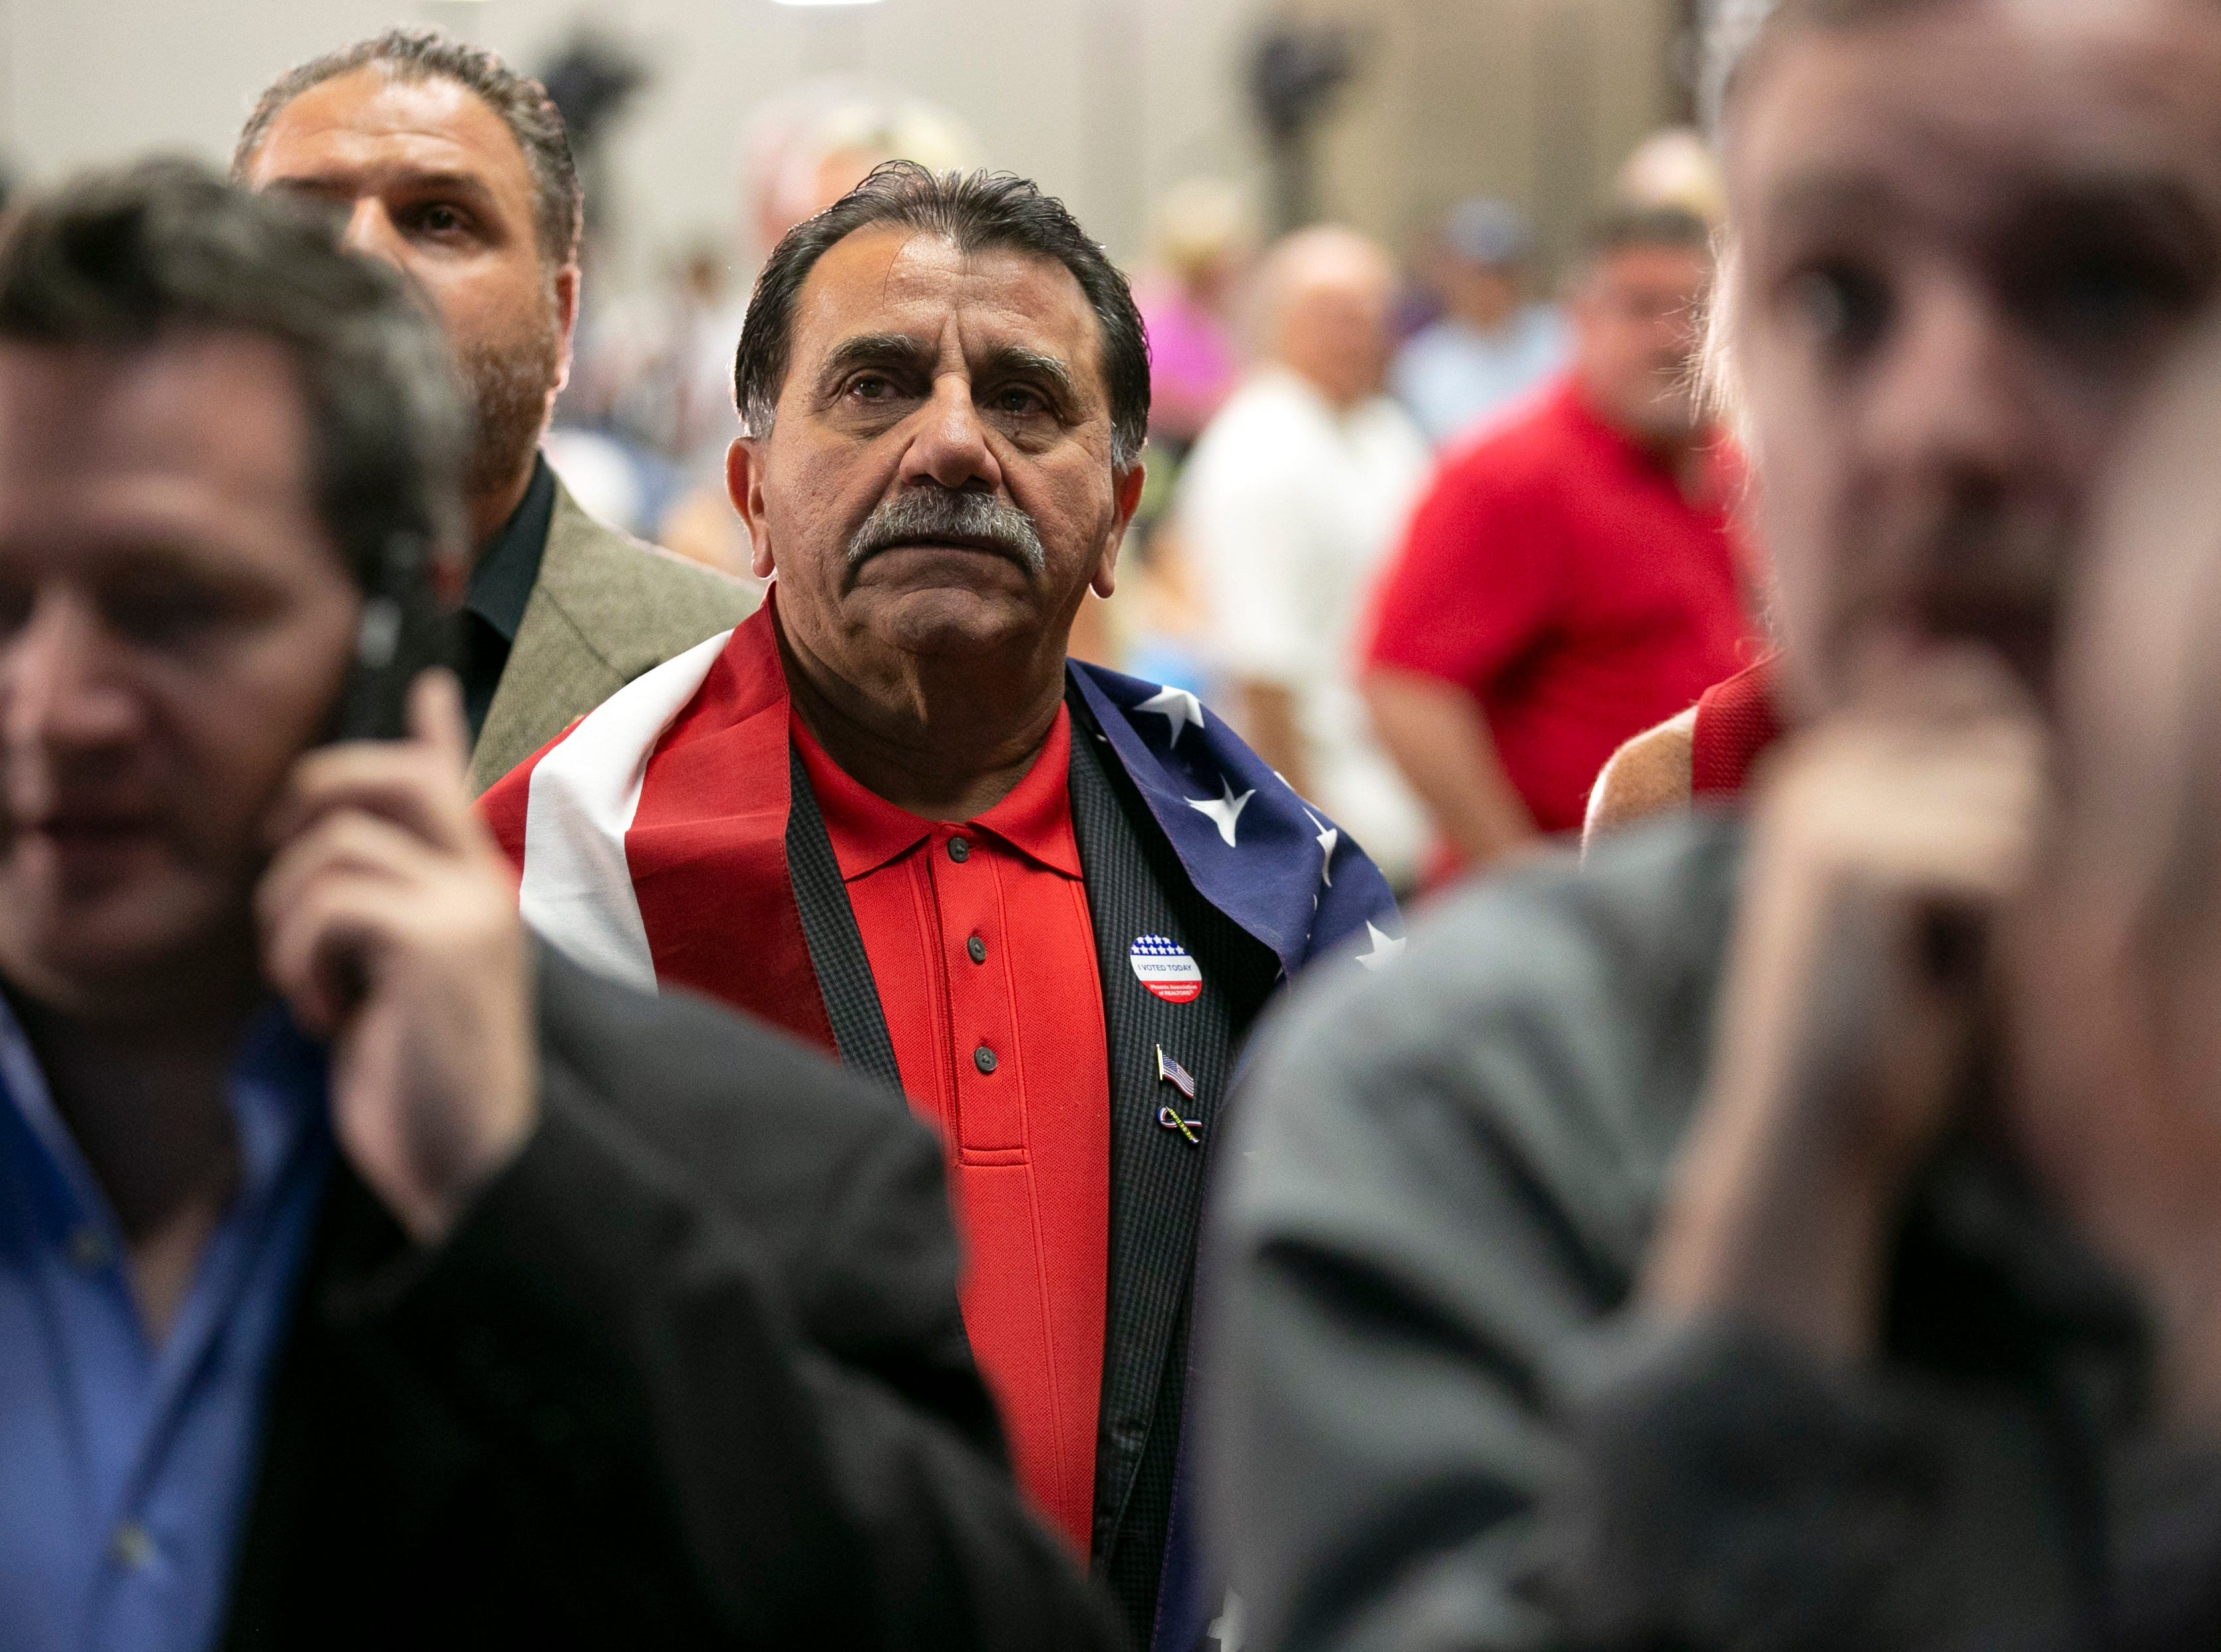 Republican Ashur Warda (center) of Peoria watches early results during the Republican watch party at the DoubleTree Resort in Scottsdale on Election Day for the midterms on Tuesday, November 6, 2018.